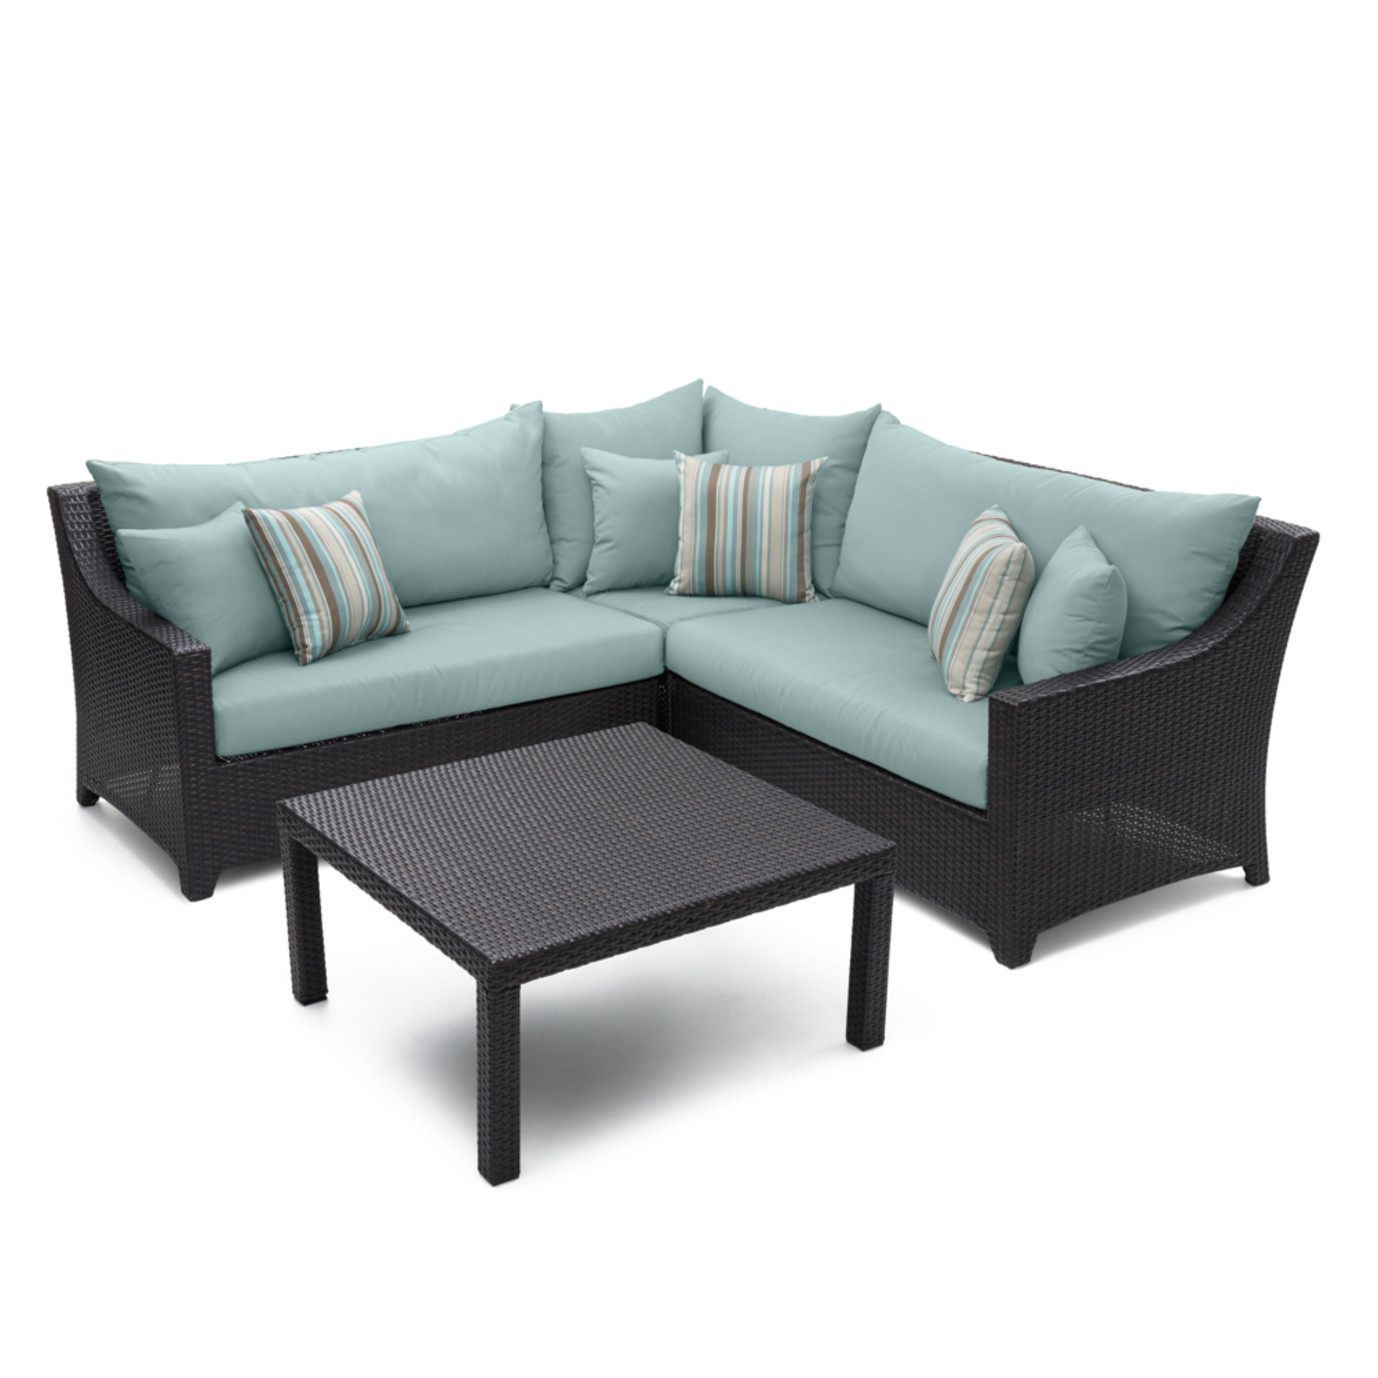 Deco™ 4 Piece Sectional and Table - Bliss Blue